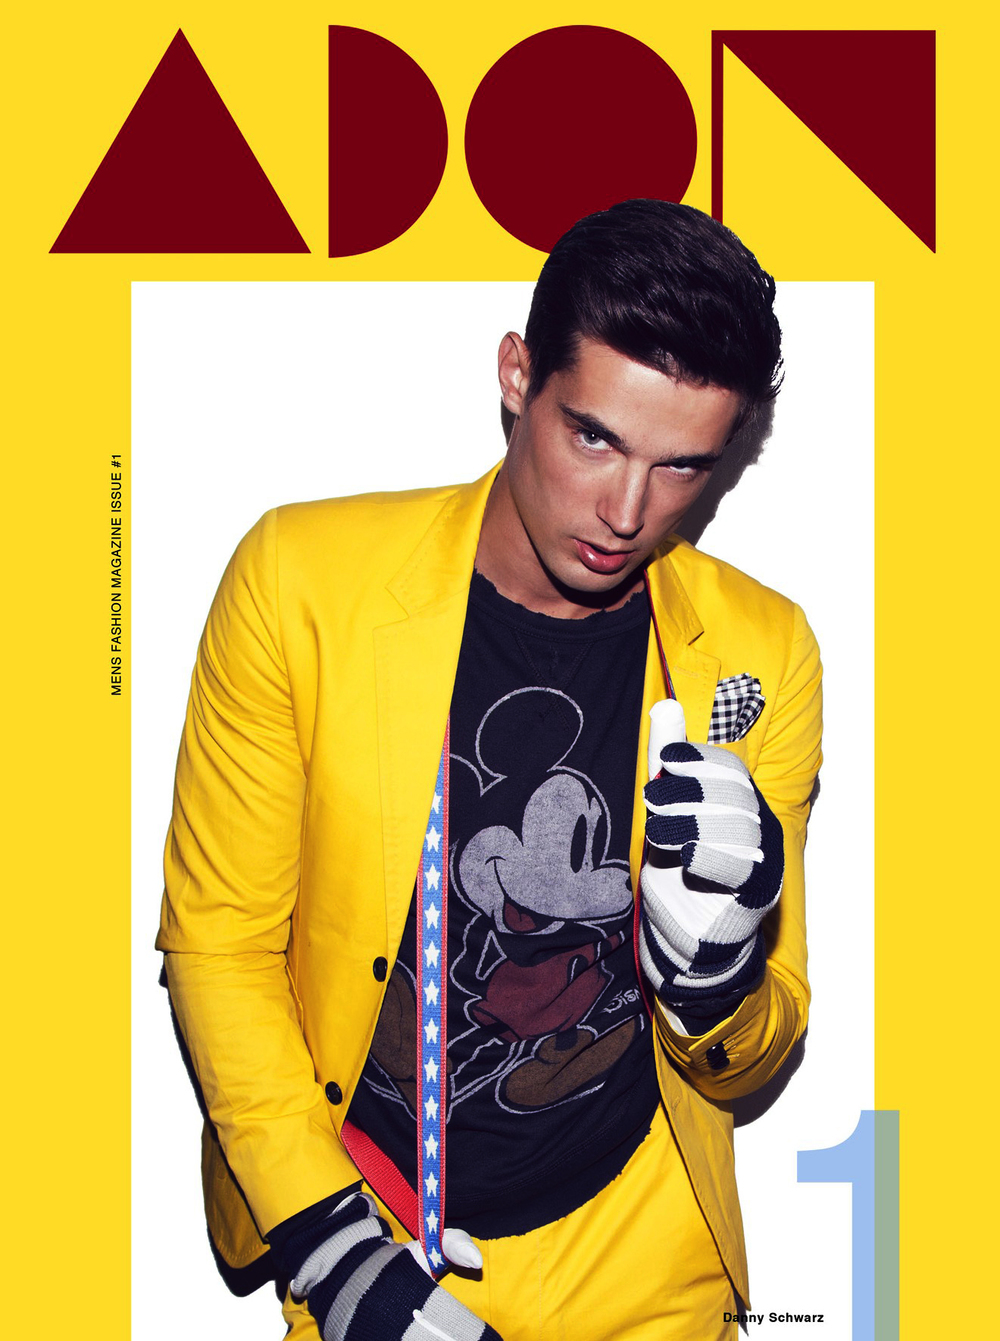 Danny-Schwarz-ADON-Magazine-cover-november-2012